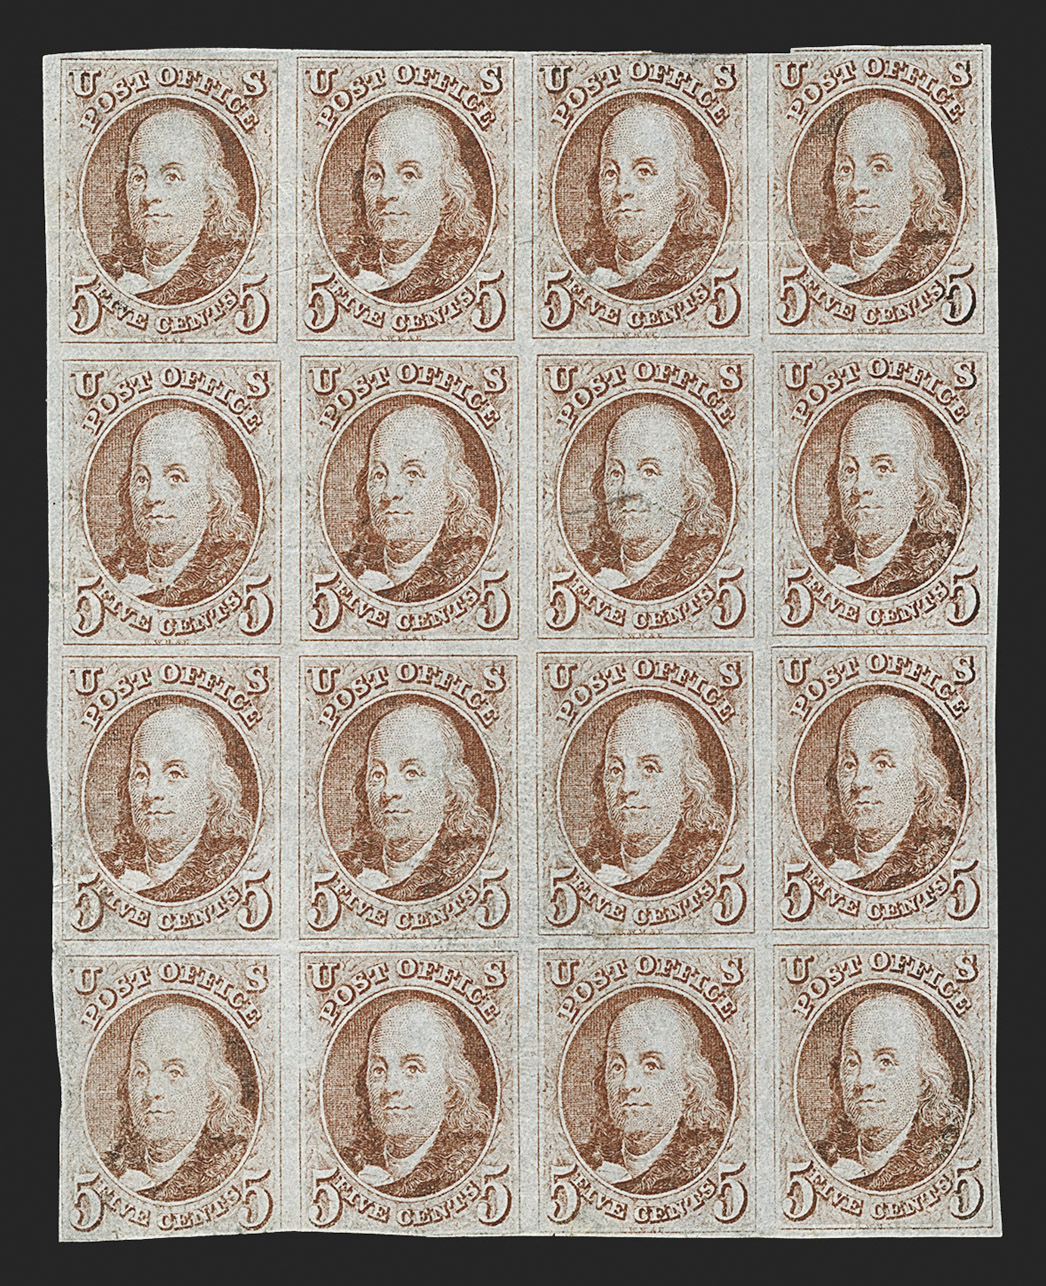 The Celebrated Lord Crawford Block of the 5¢ 1847 First Issue